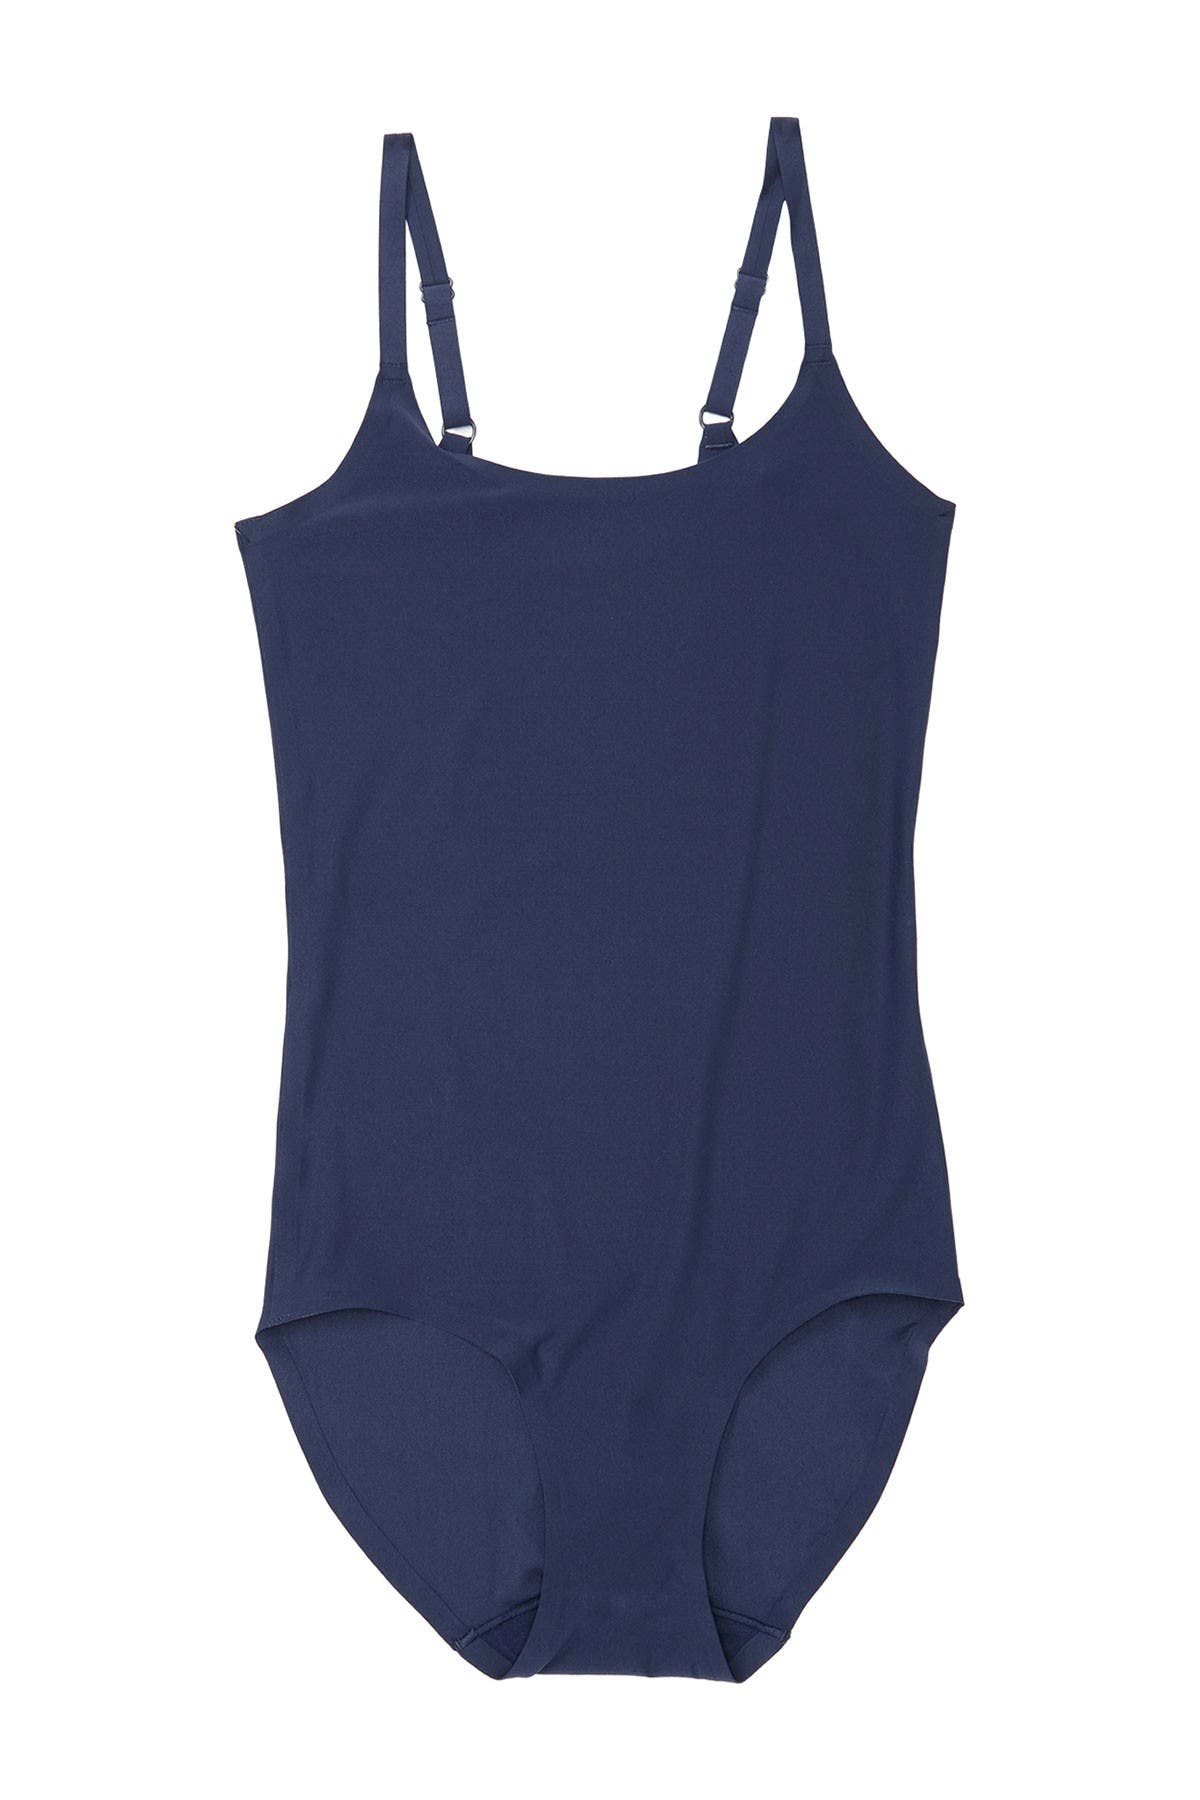 Image of Chantelle Soft Stretch Smooth Bodysuit